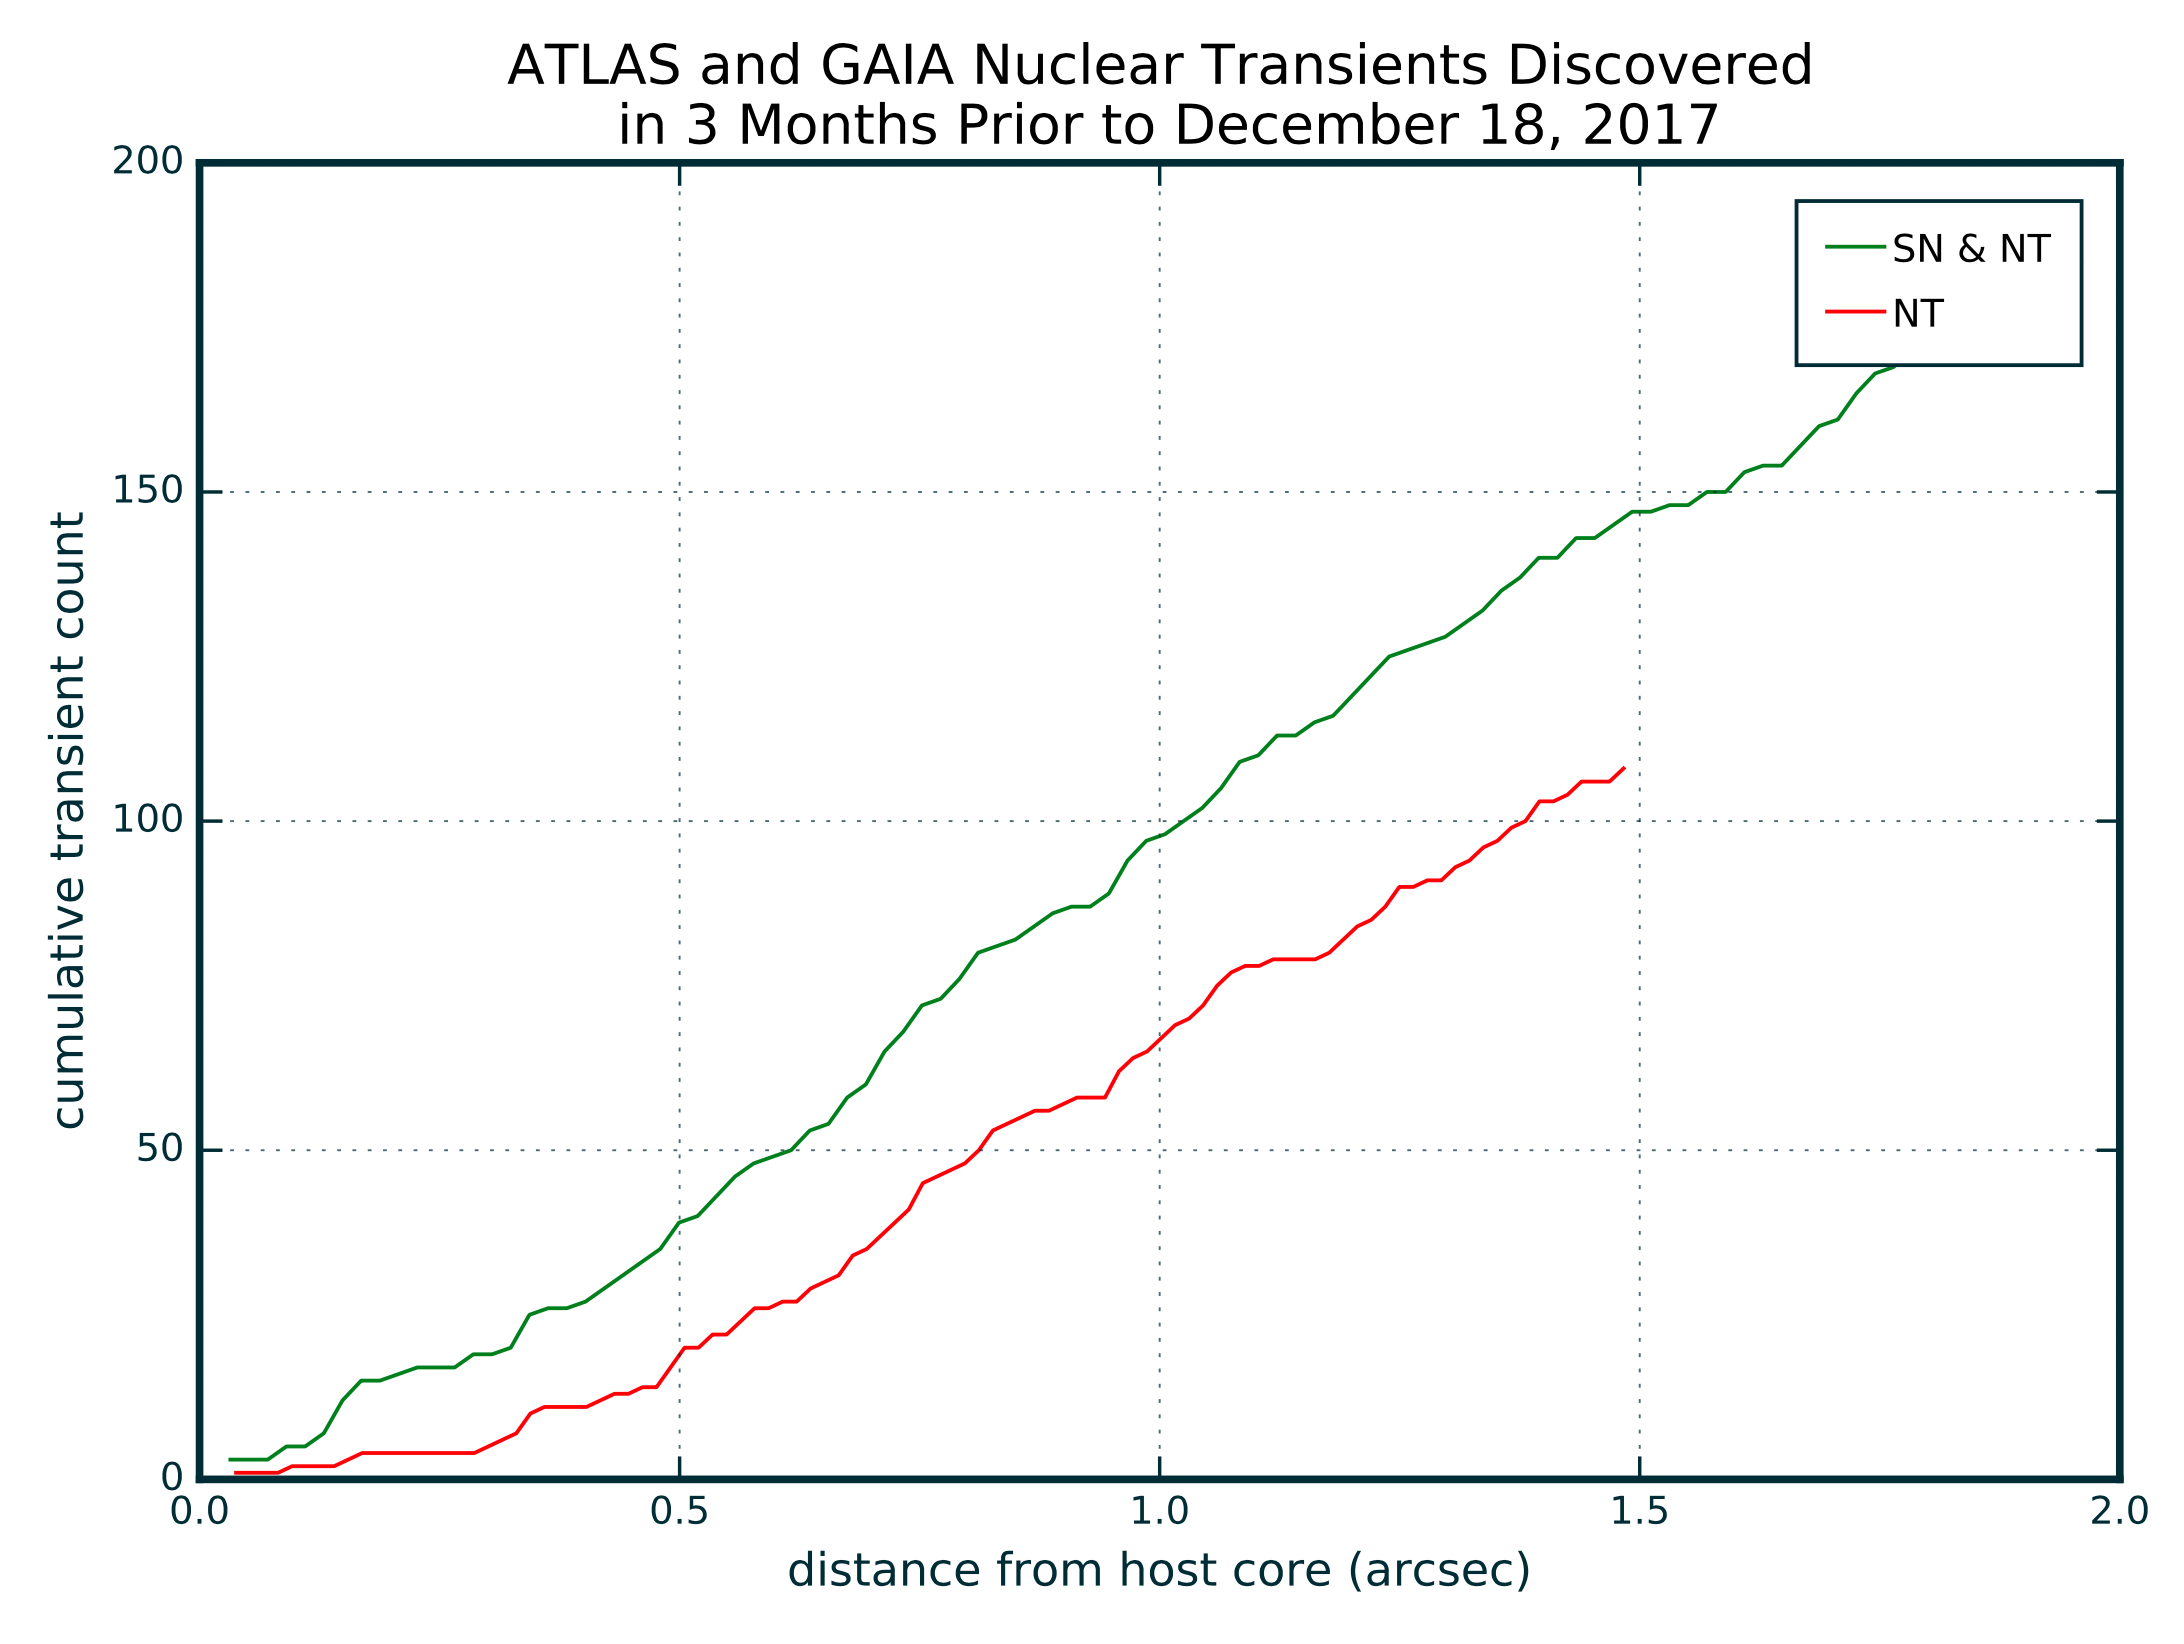 ATLAS and GAIA NTs